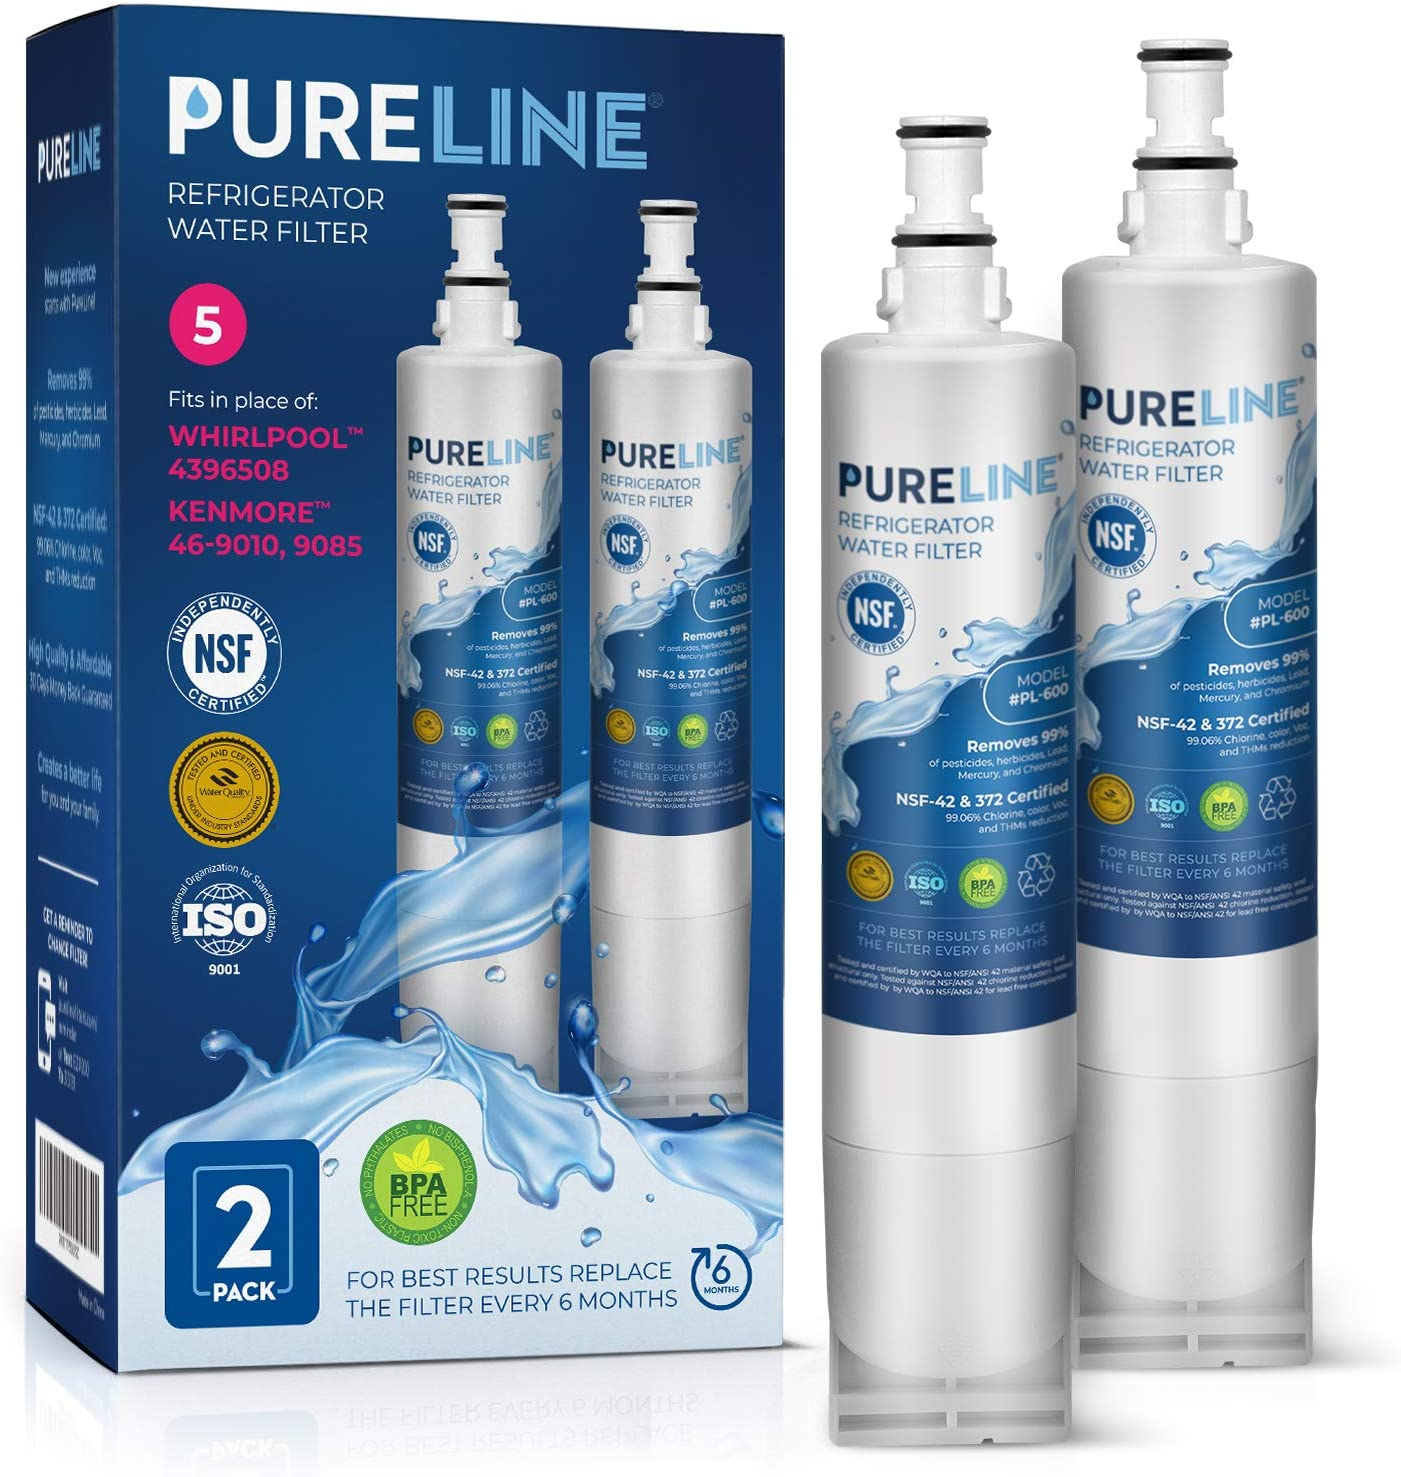 PURELINE 4396508 & EDR5RXD1 Water Filter Replacement for Whirlpool 4396508, Everydrop Filter 5, 4396510, NLC240V, PNL240V, 4396508p, 4396547, 4392857,4396510p, LC400V, Kenmore 46-9010, 9085 (2 Pack)